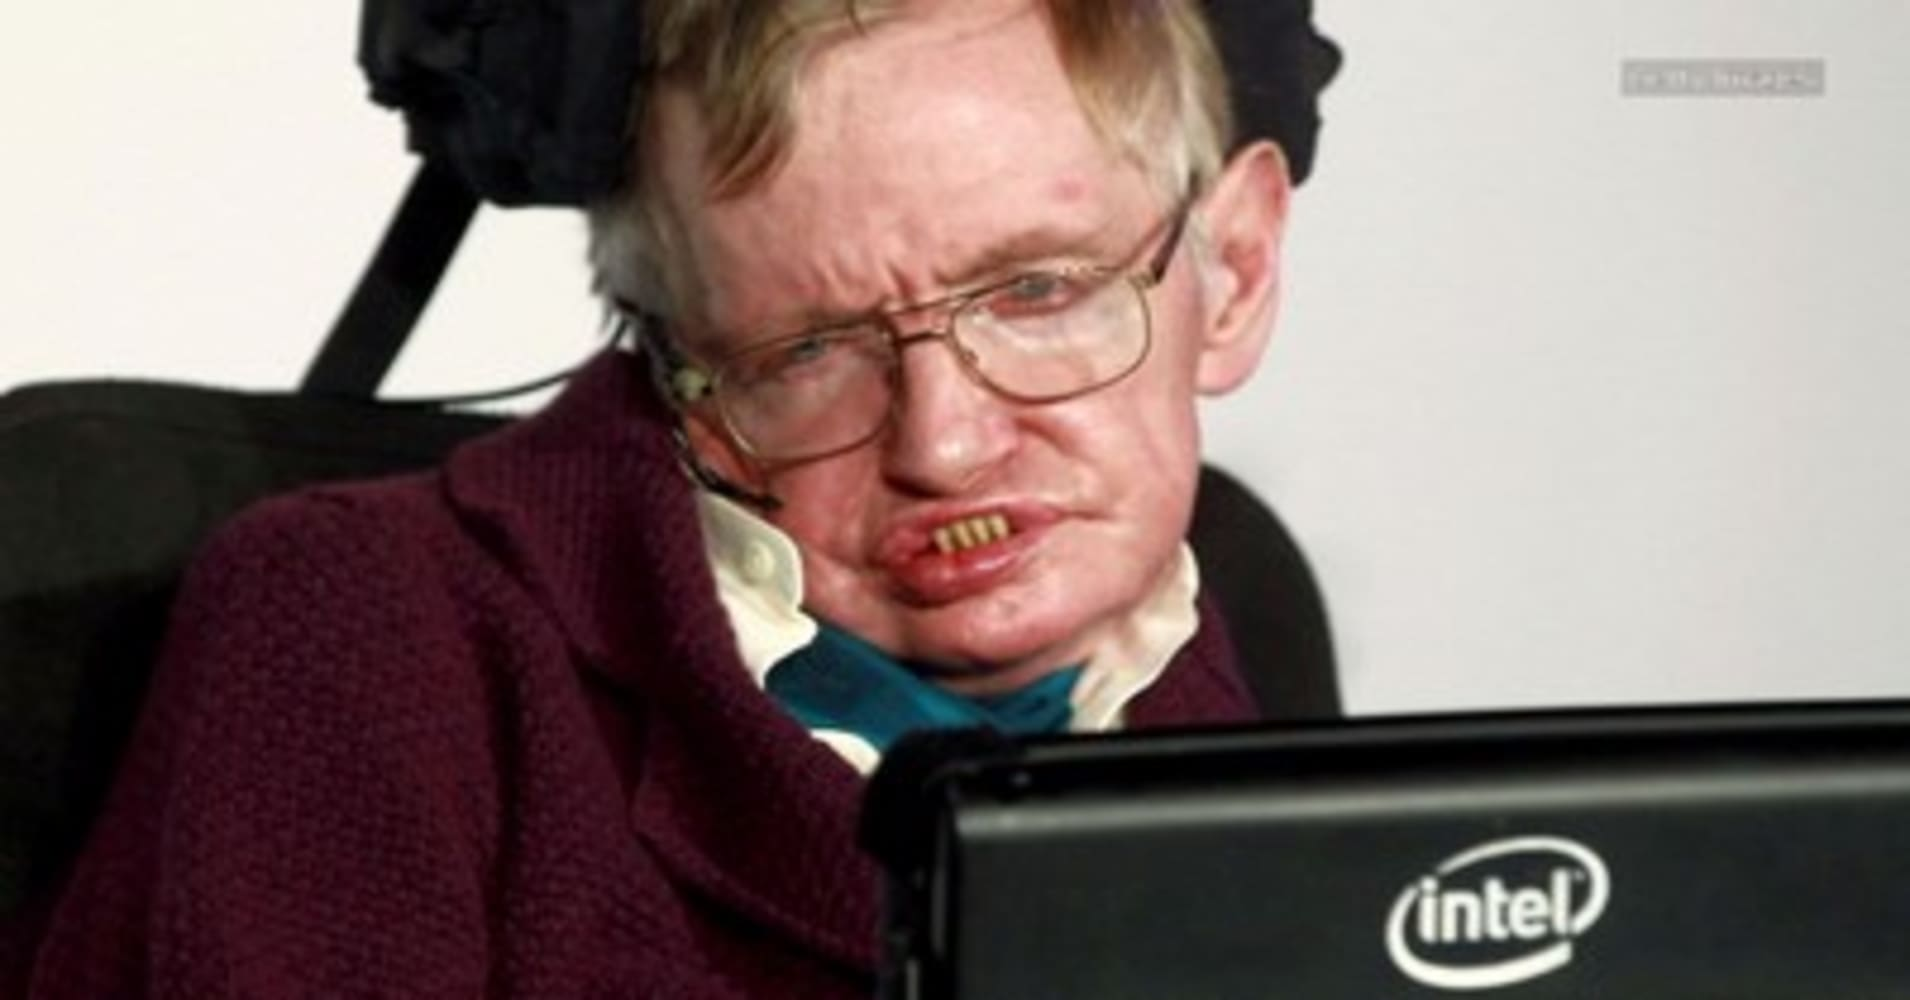 Stephen Hawking says humans must colonize another planet in 100 years or face extinction